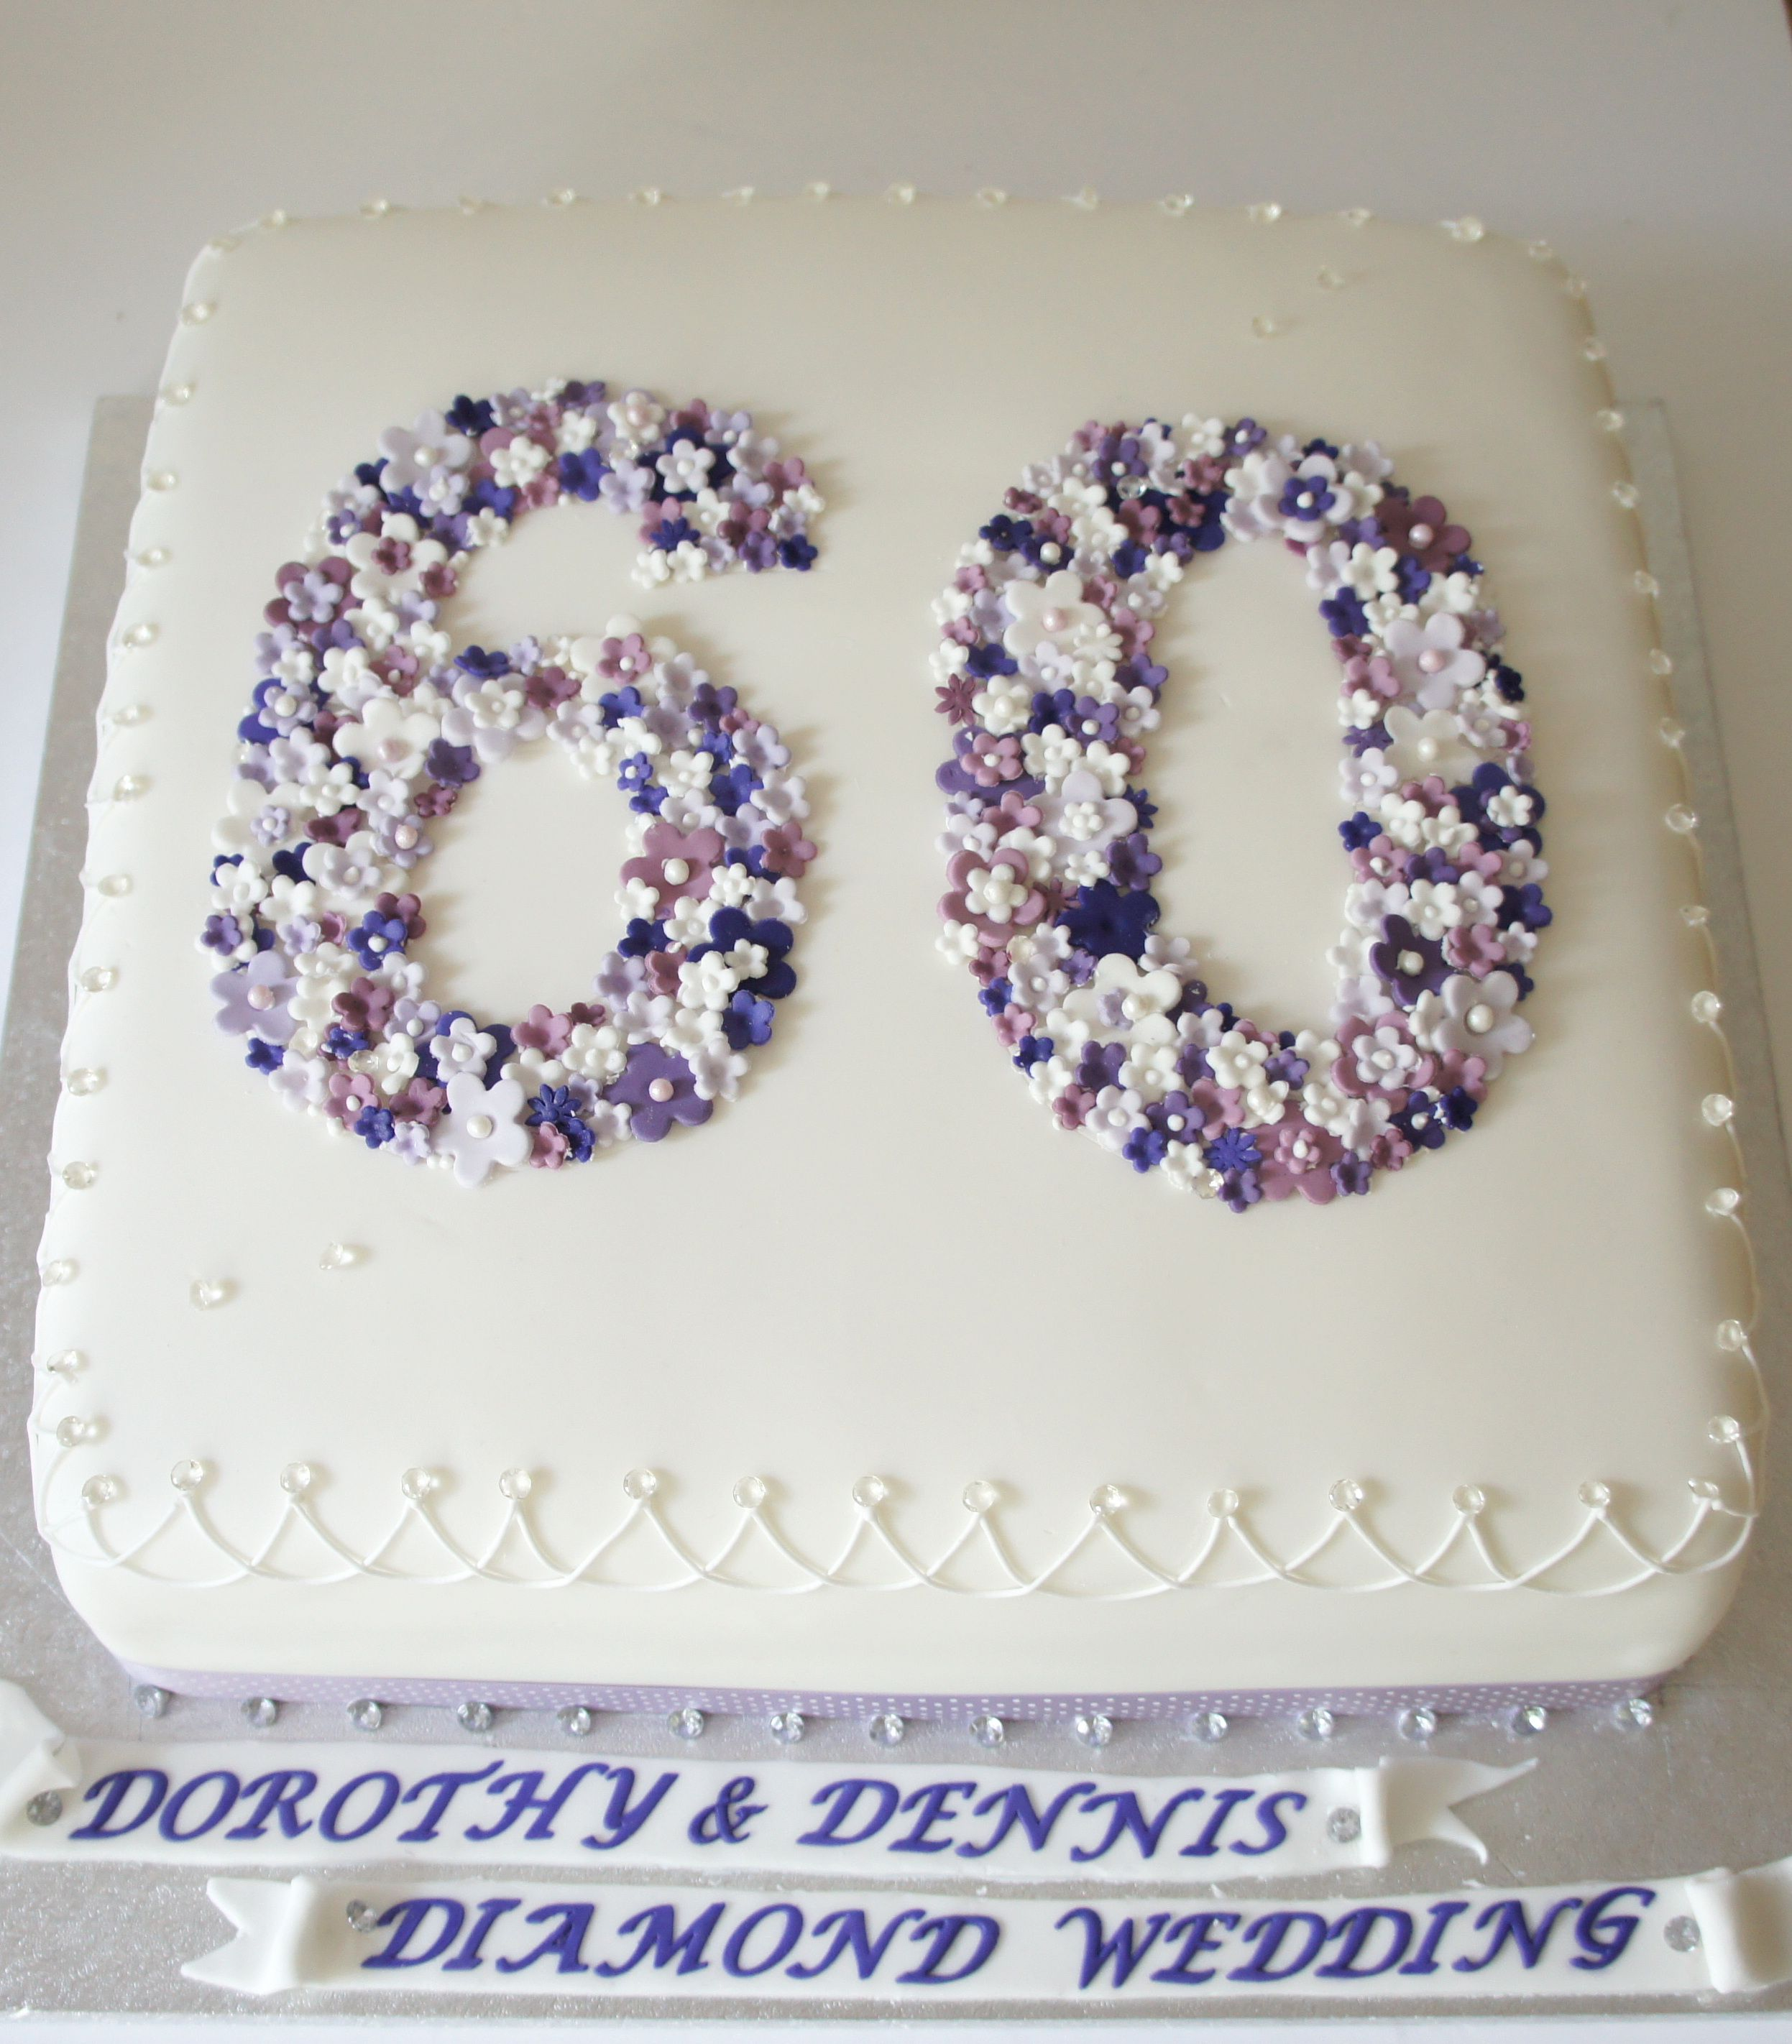 Diamond wedding anniversary Cake from